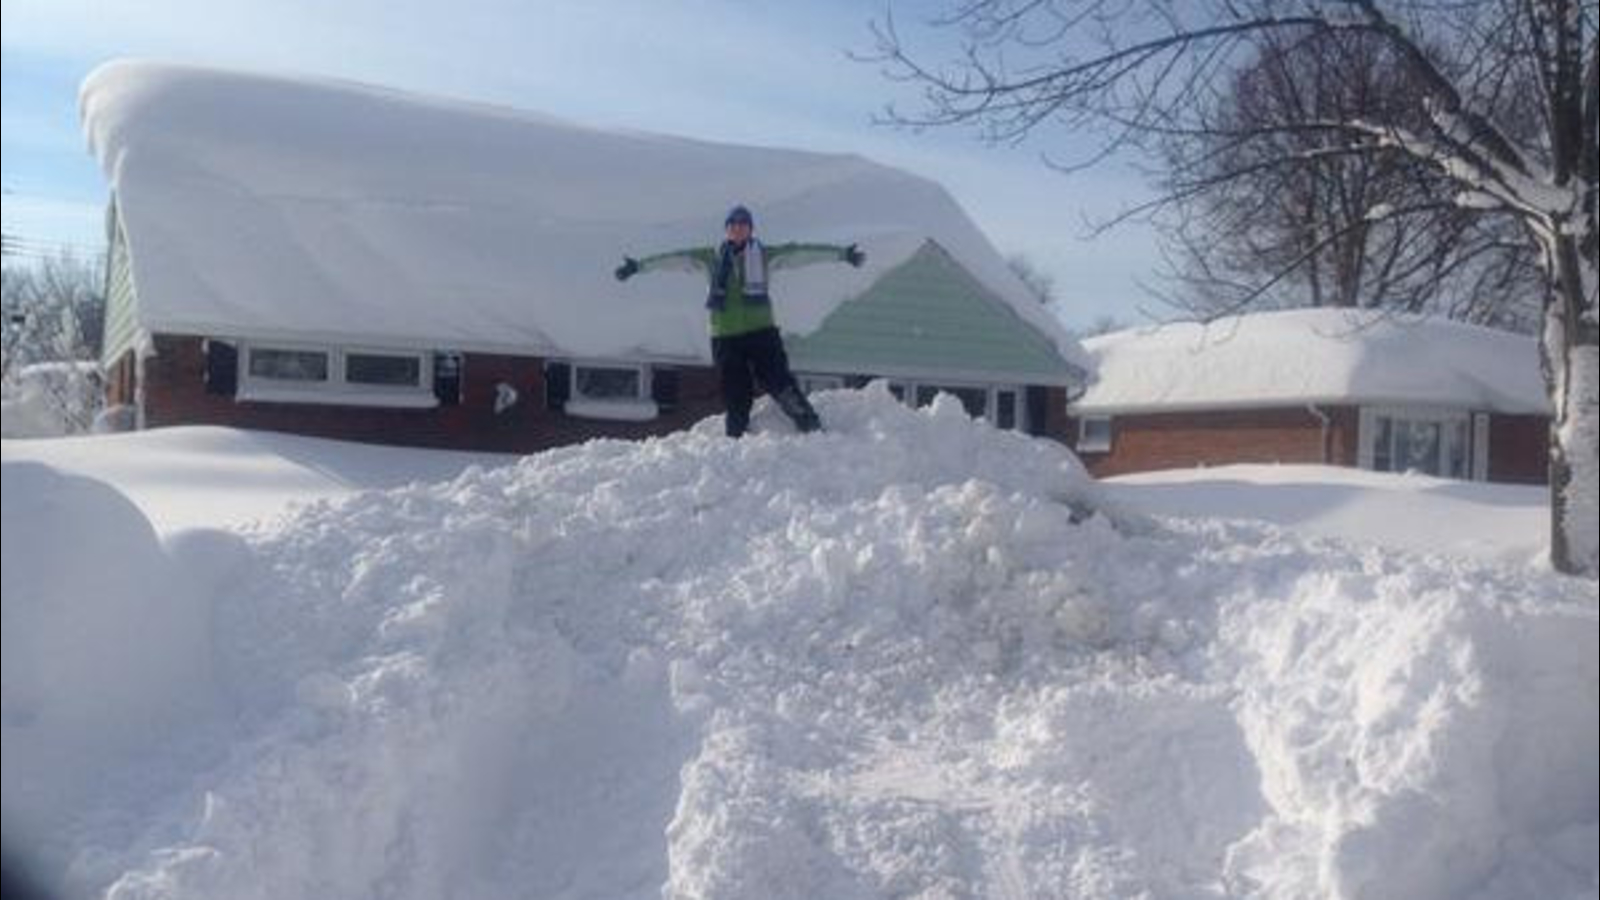 incredible snow photos and videos in buffalo and upstate